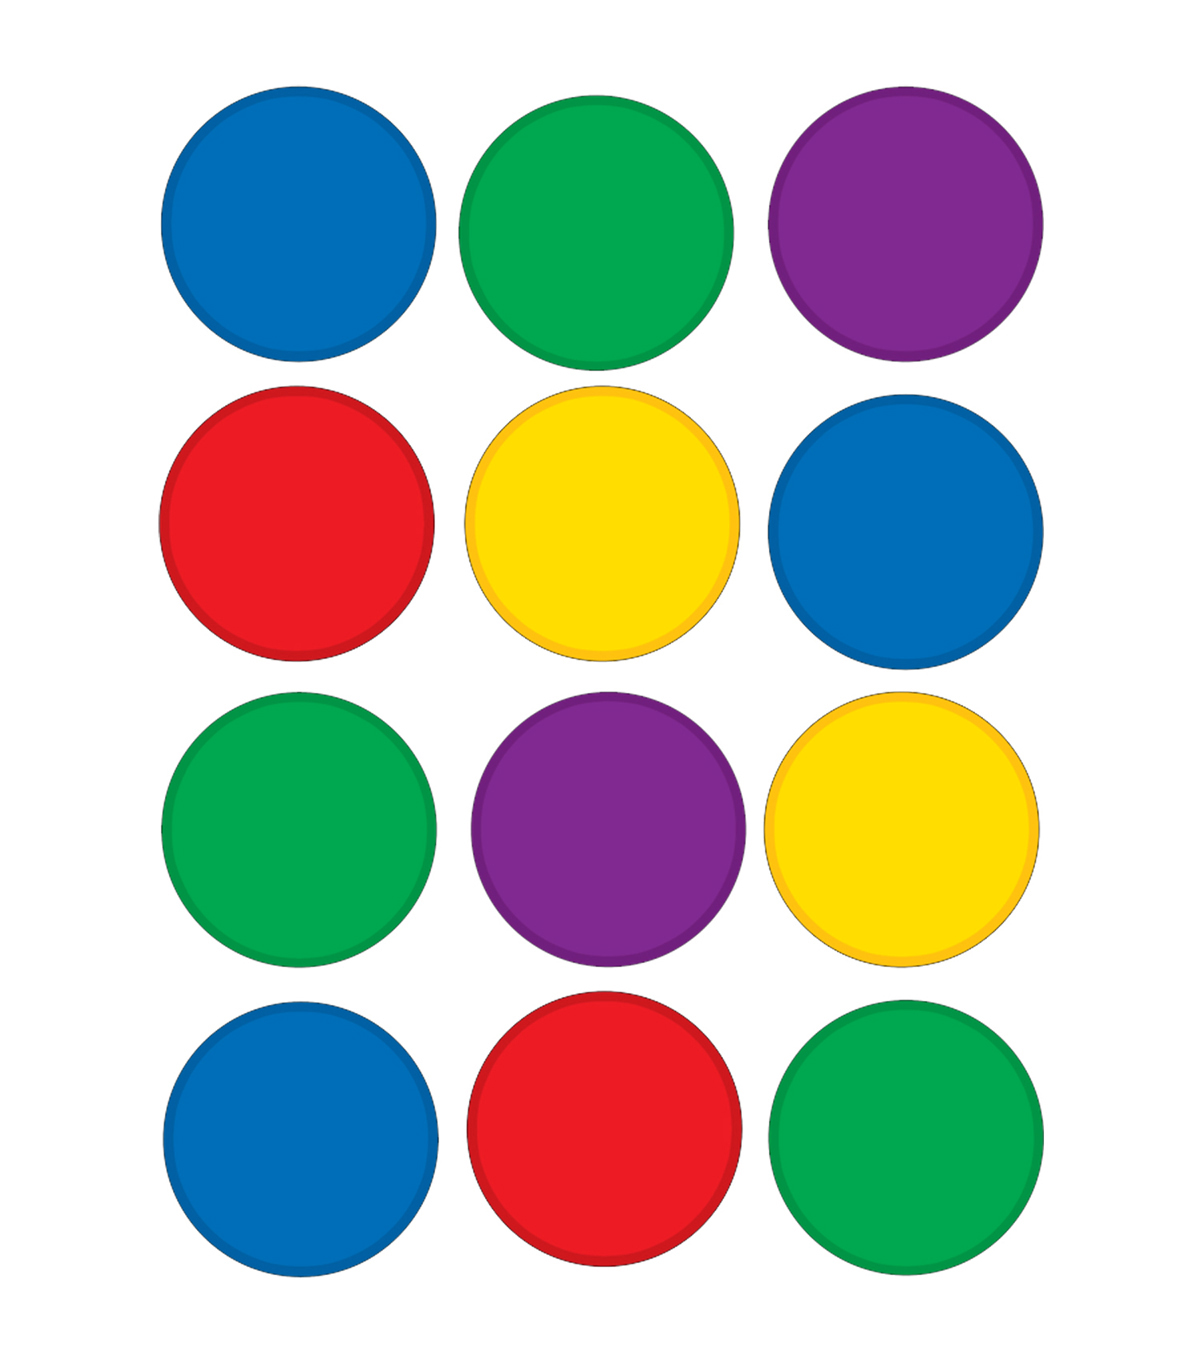 Colorful Circles Mini Accents 36/pk Set Of 12 Packs